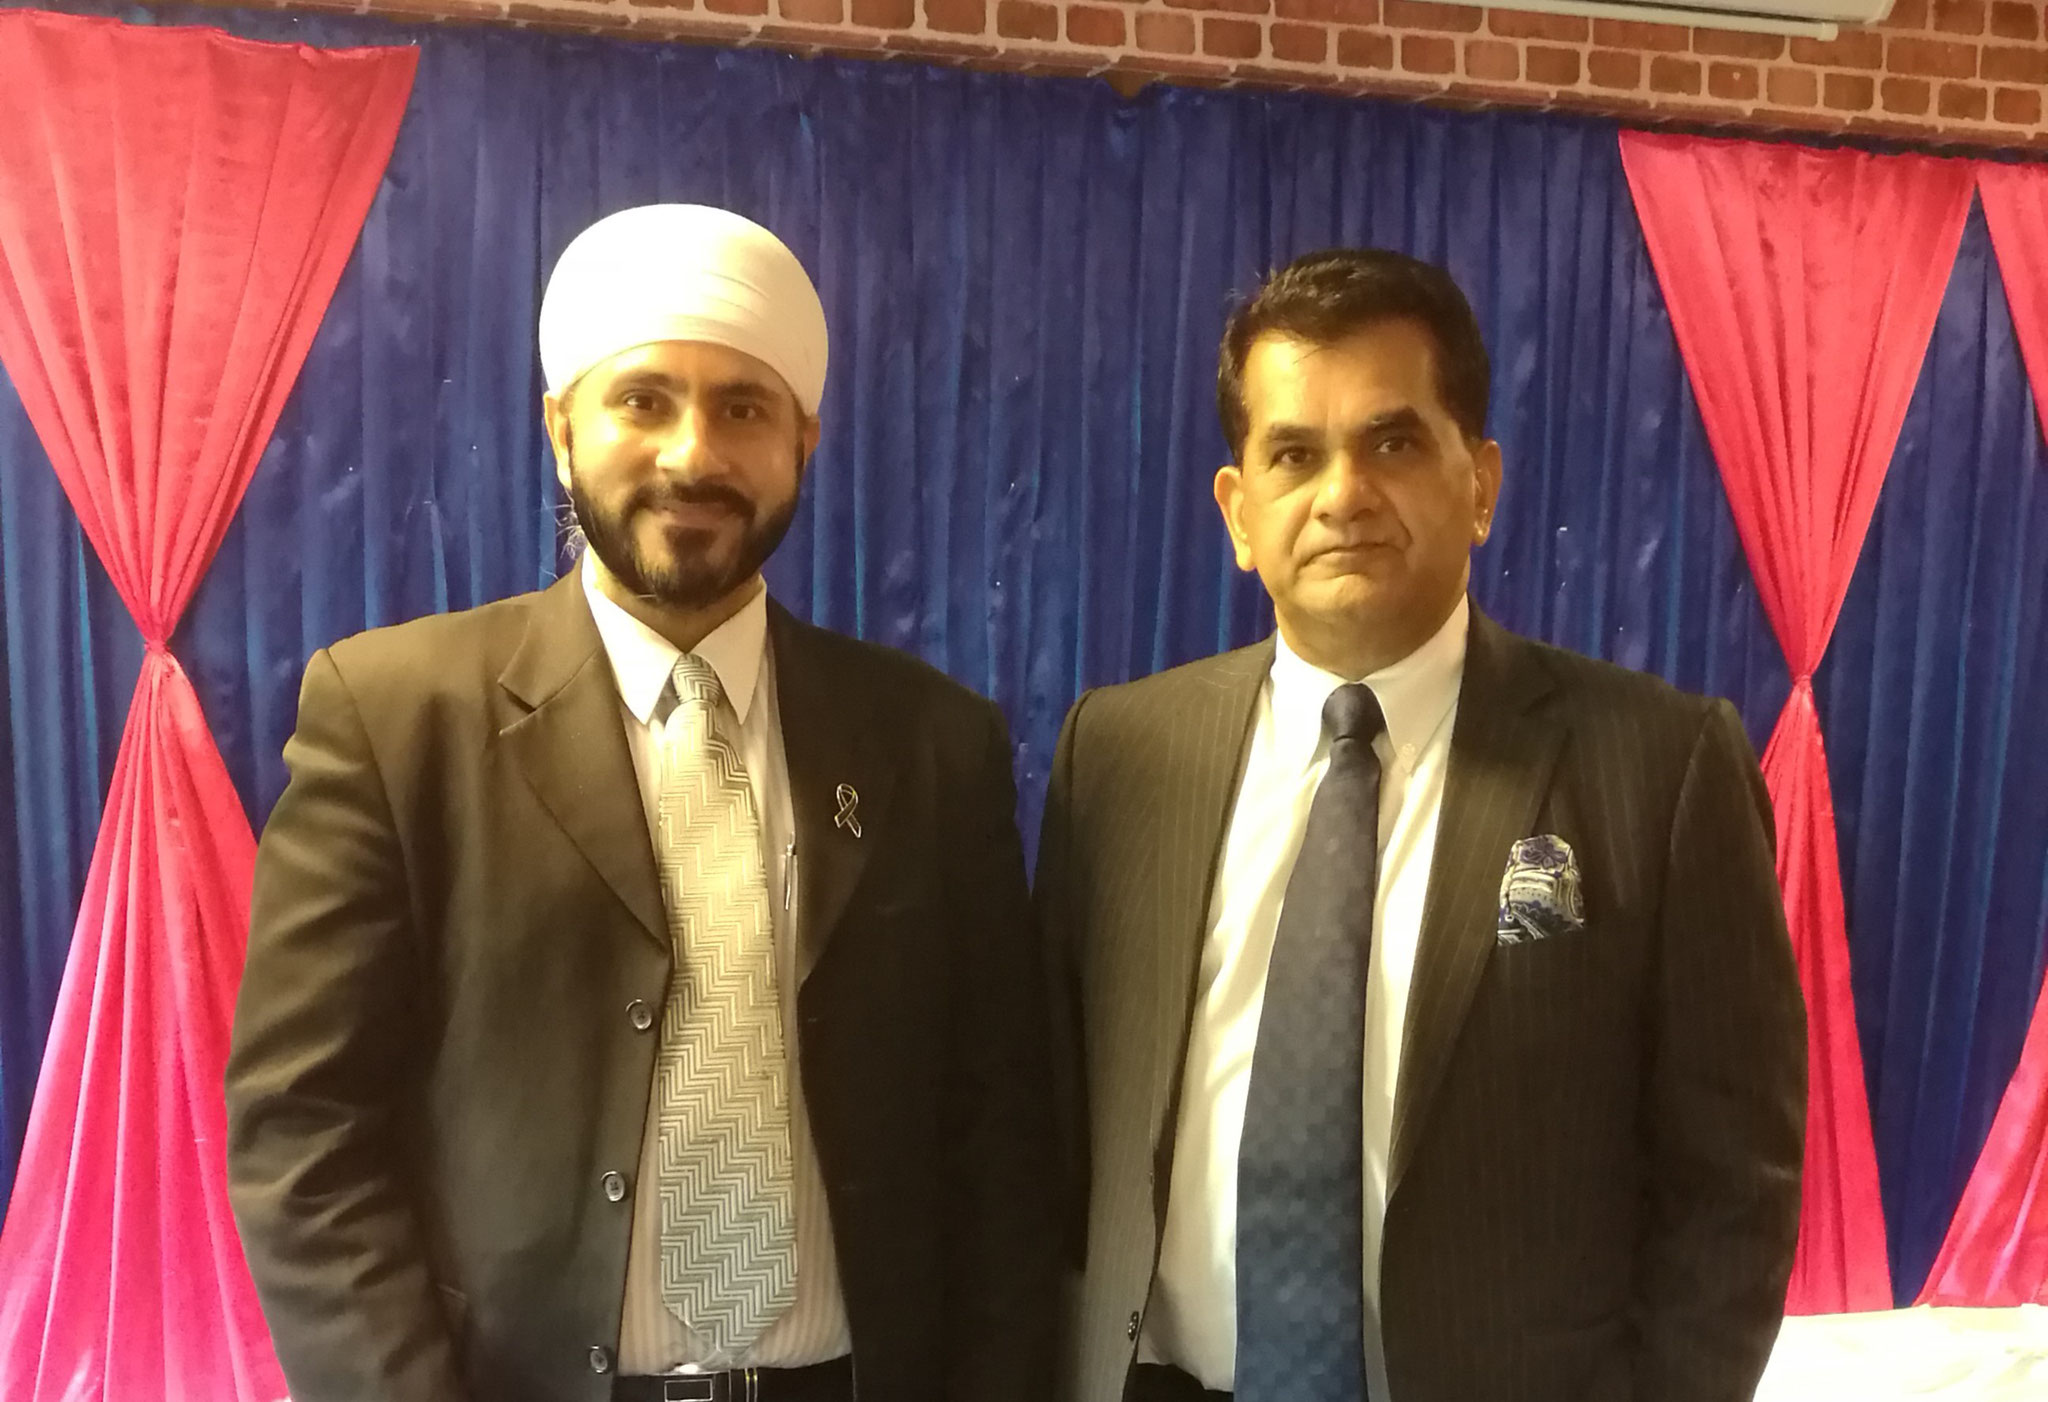 with H.E. Amitabh Kan, national Secretary, Department of Industrial Policy and Promotion (DIPP) India